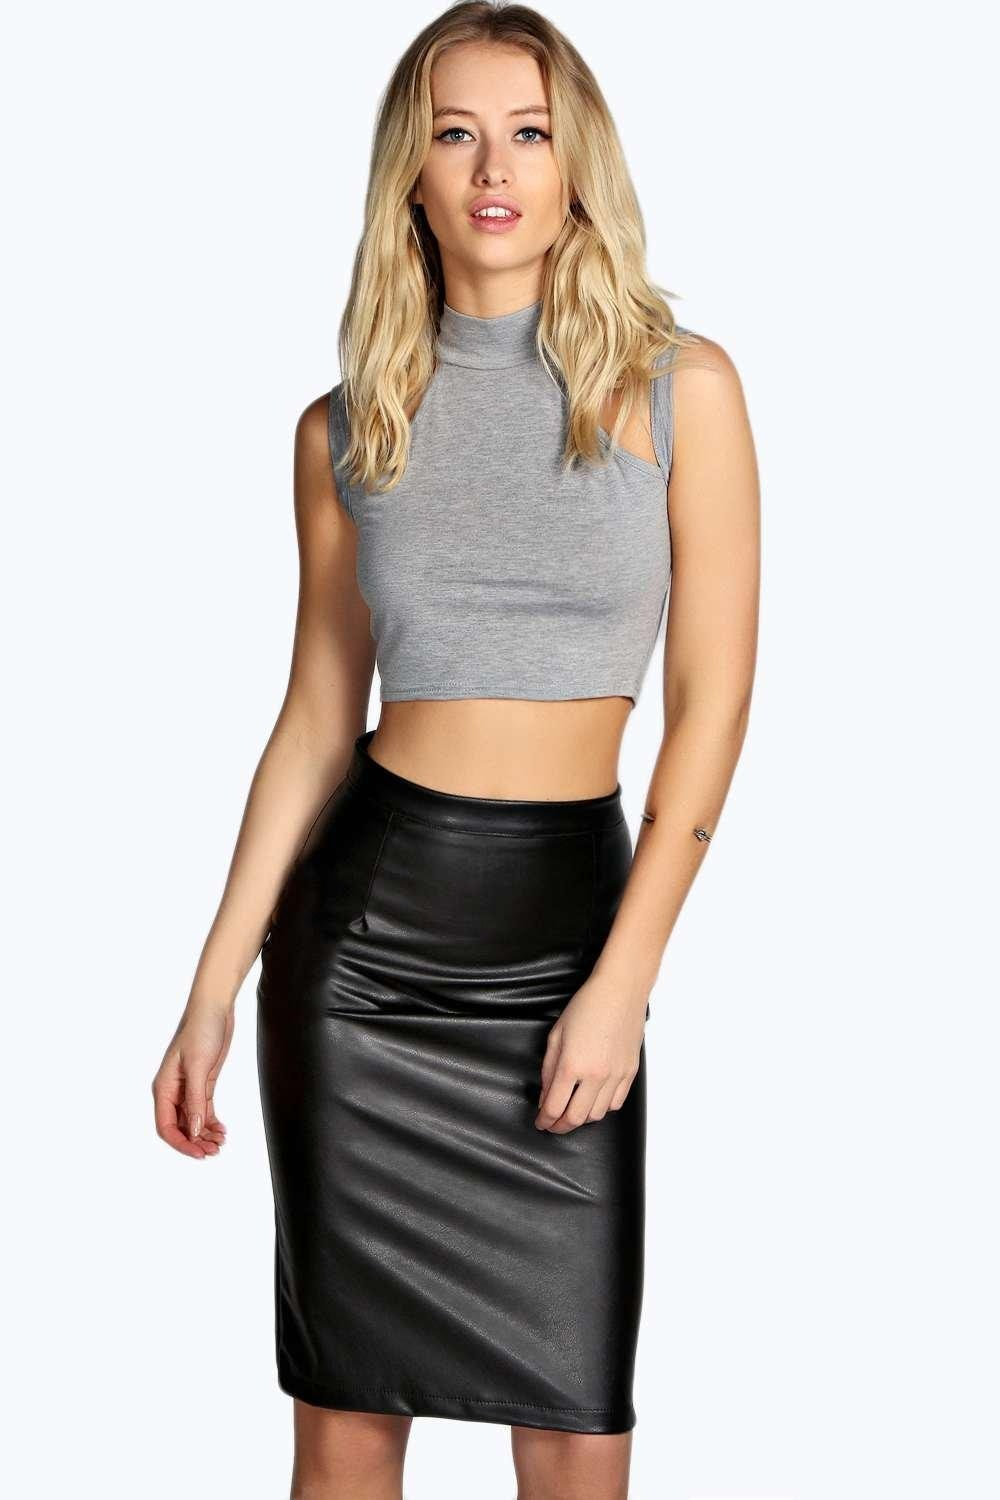 Faux Leather Skirt | Faux Leather High Waisted Skirt | Maroon Faux Leather Skirt